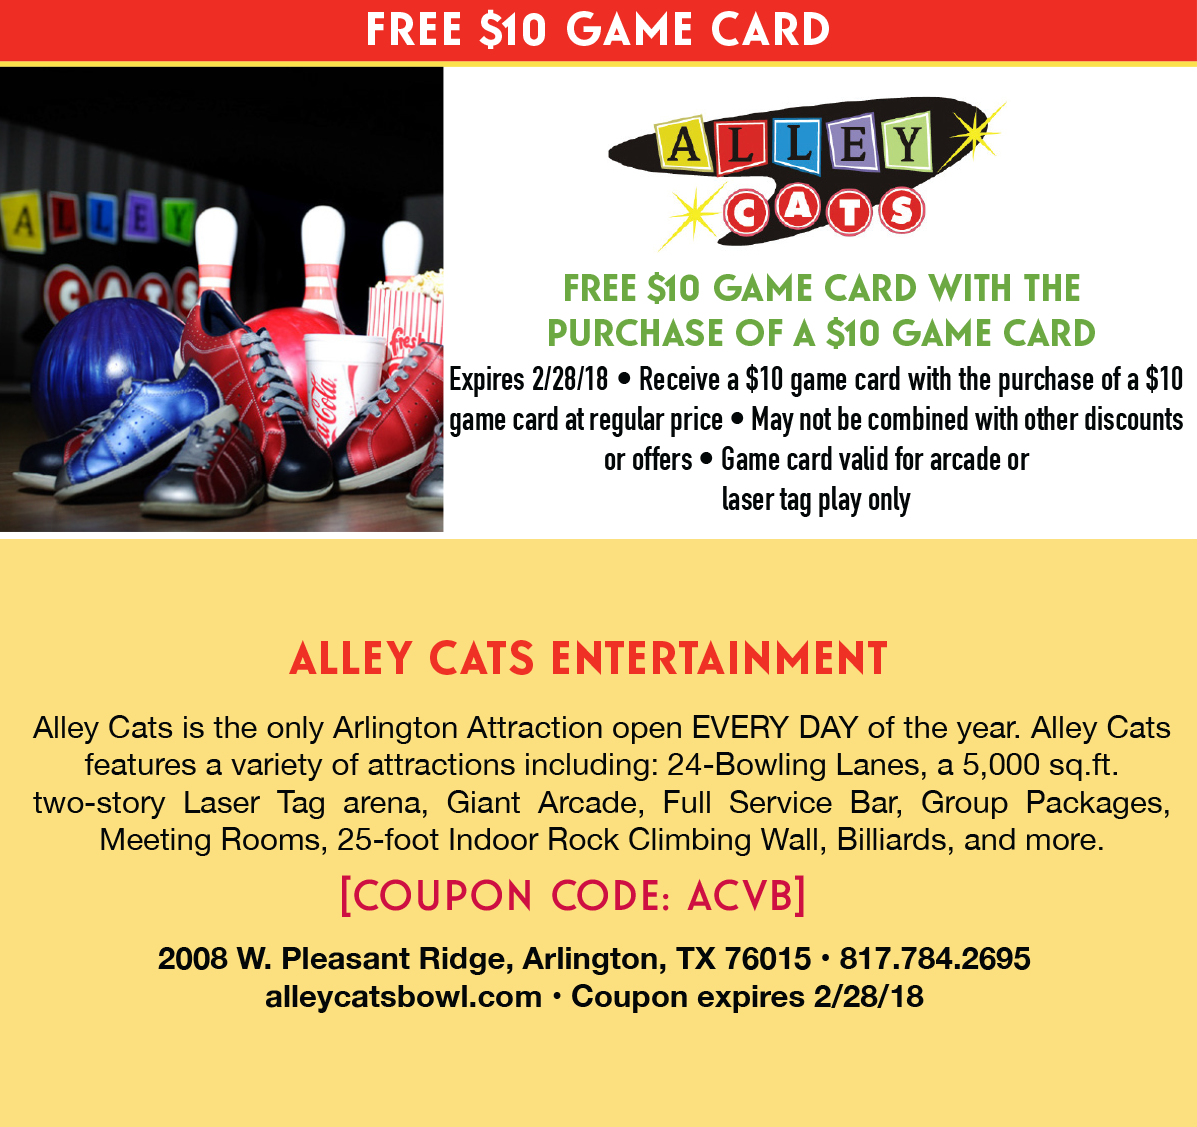 Alley Cats: Free $10 game card with the purchase of a $10 game card.